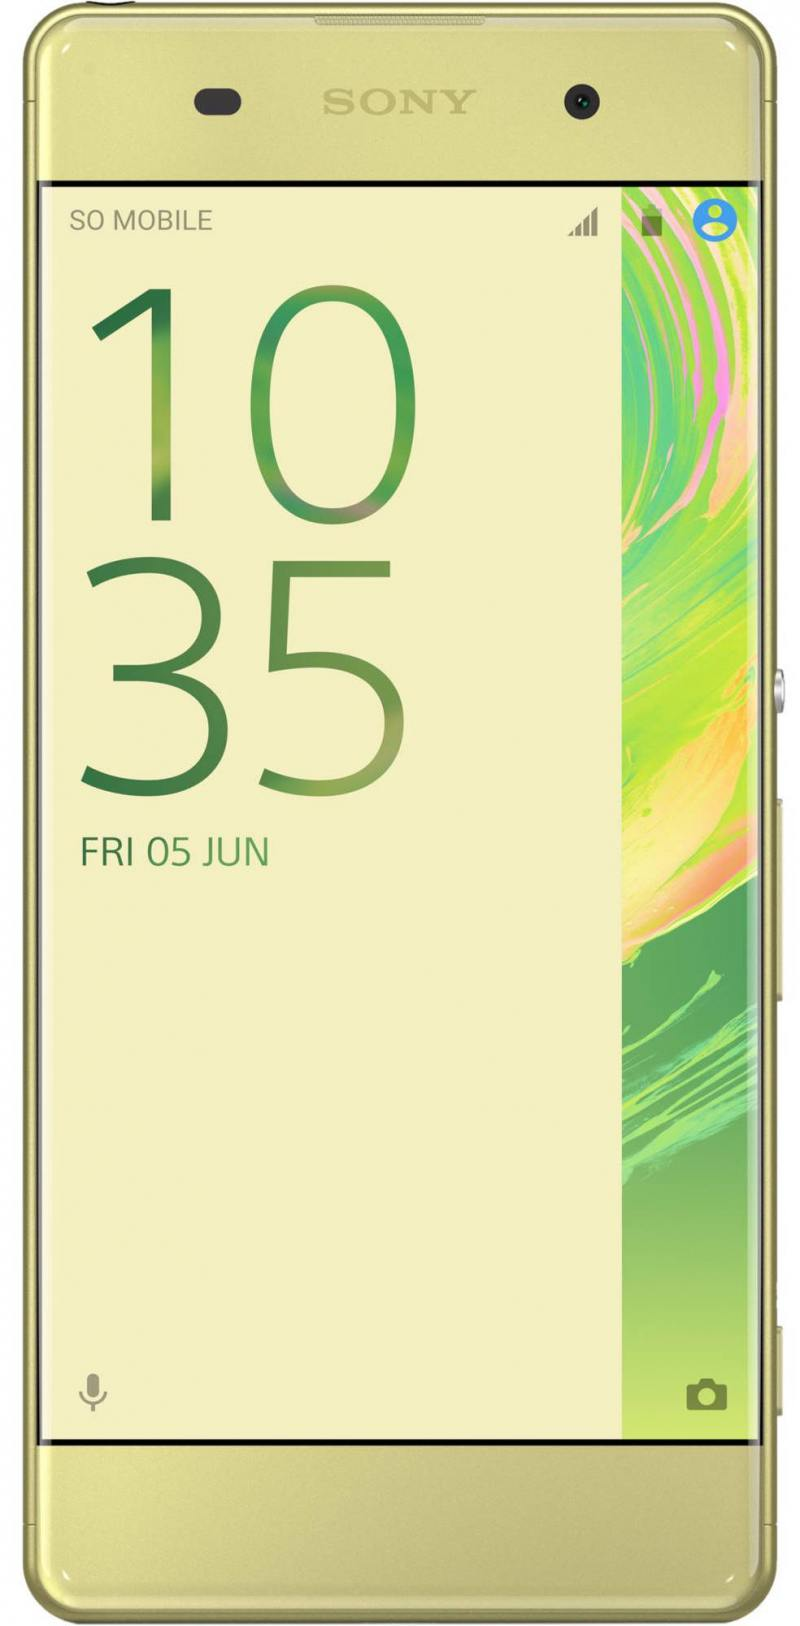 Смартфон SONY Xperia XA Dual (F3112) Lime Gold MediaTek MT6755/2 Гб/16 Гб/5 (1280x720)/DualSim/3G/4G/BT/Android 6.0 смартфон sony xperia xa ultra lime gold android 6 0 marshmallow mt6755 2000mhz 6 0 1920x1080 3072mb 16gb 4g lte [f3211lime gold]